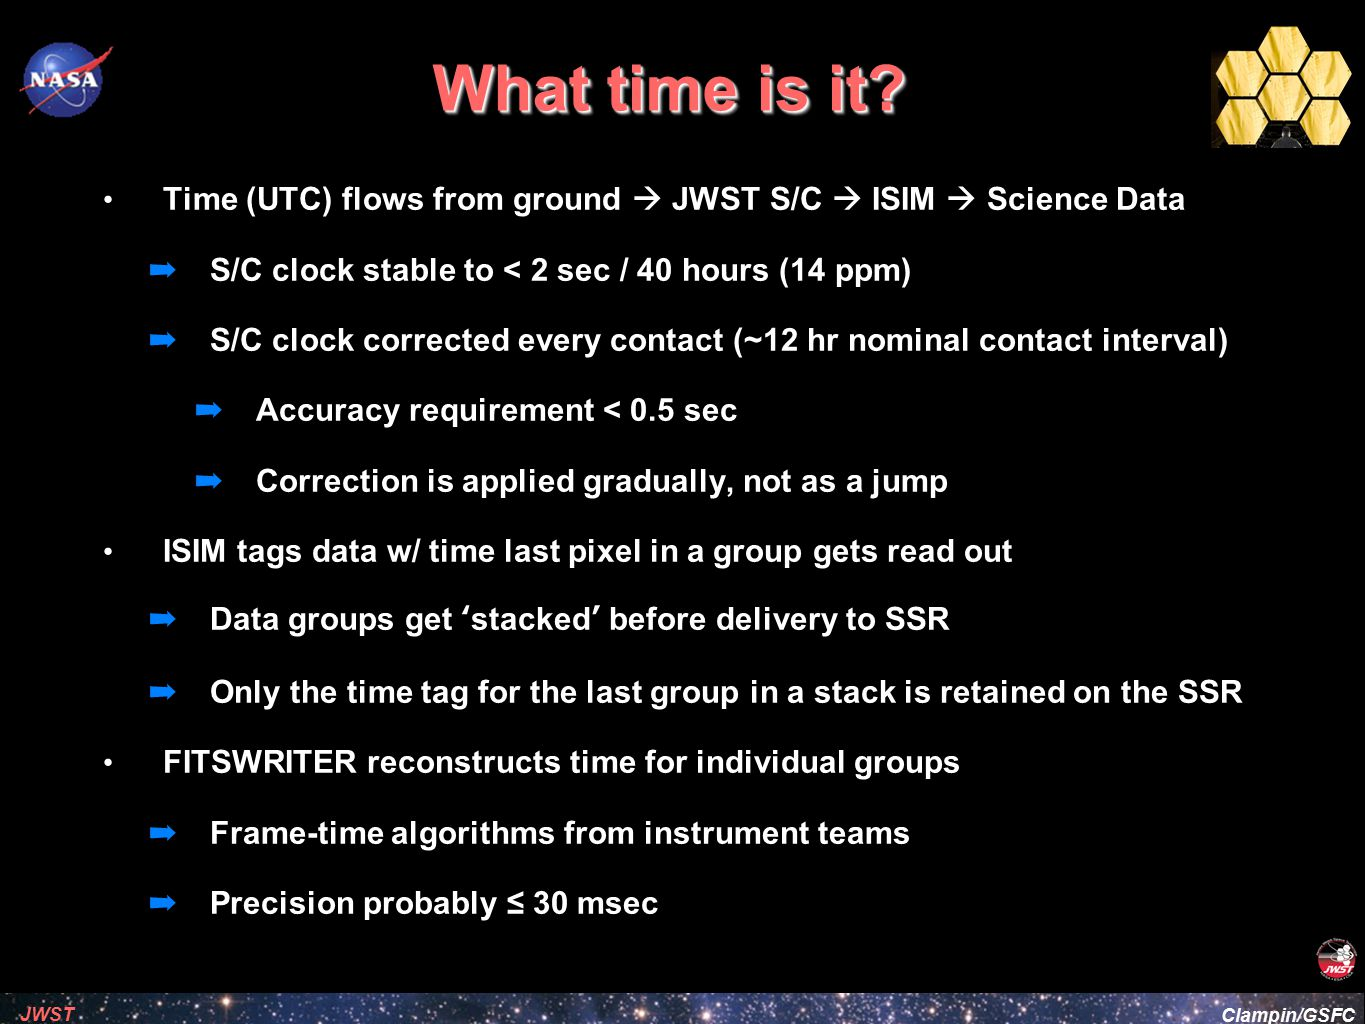 What time is it Time (UTC) flows from ground  JWST S/C  ISIM  Science Data. S/C clock stable to < 2 sec / 40 hours (14 ppm)